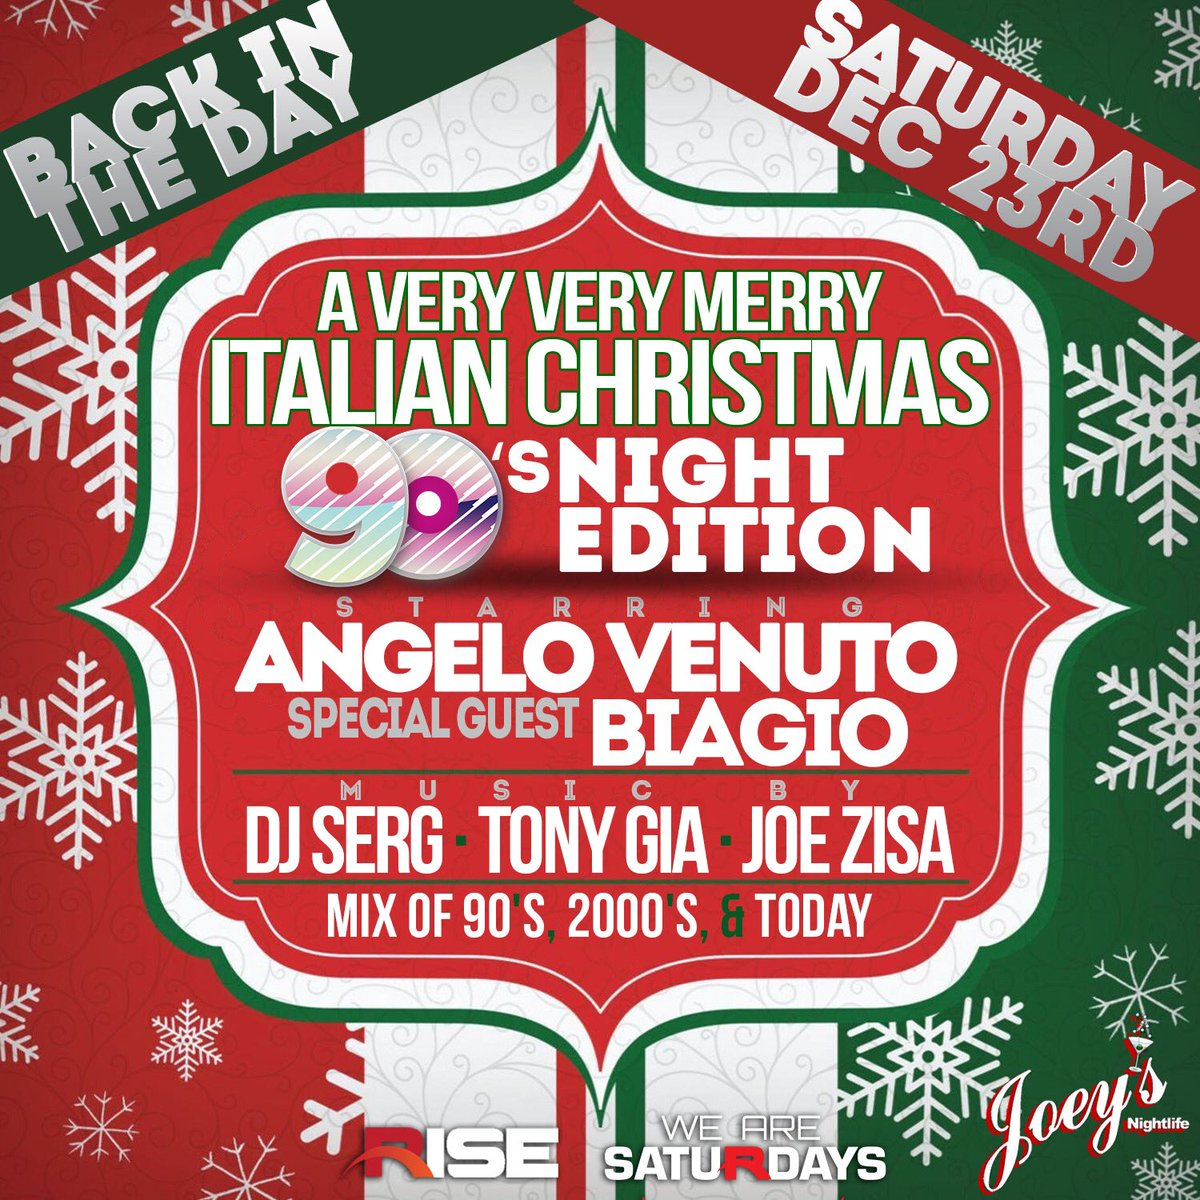 joey barcellona on twitter tonight italian christmas party 90s risesaturday starring angelovenuto live special guest biagio music by djsergnyc - Italian Christmas Music